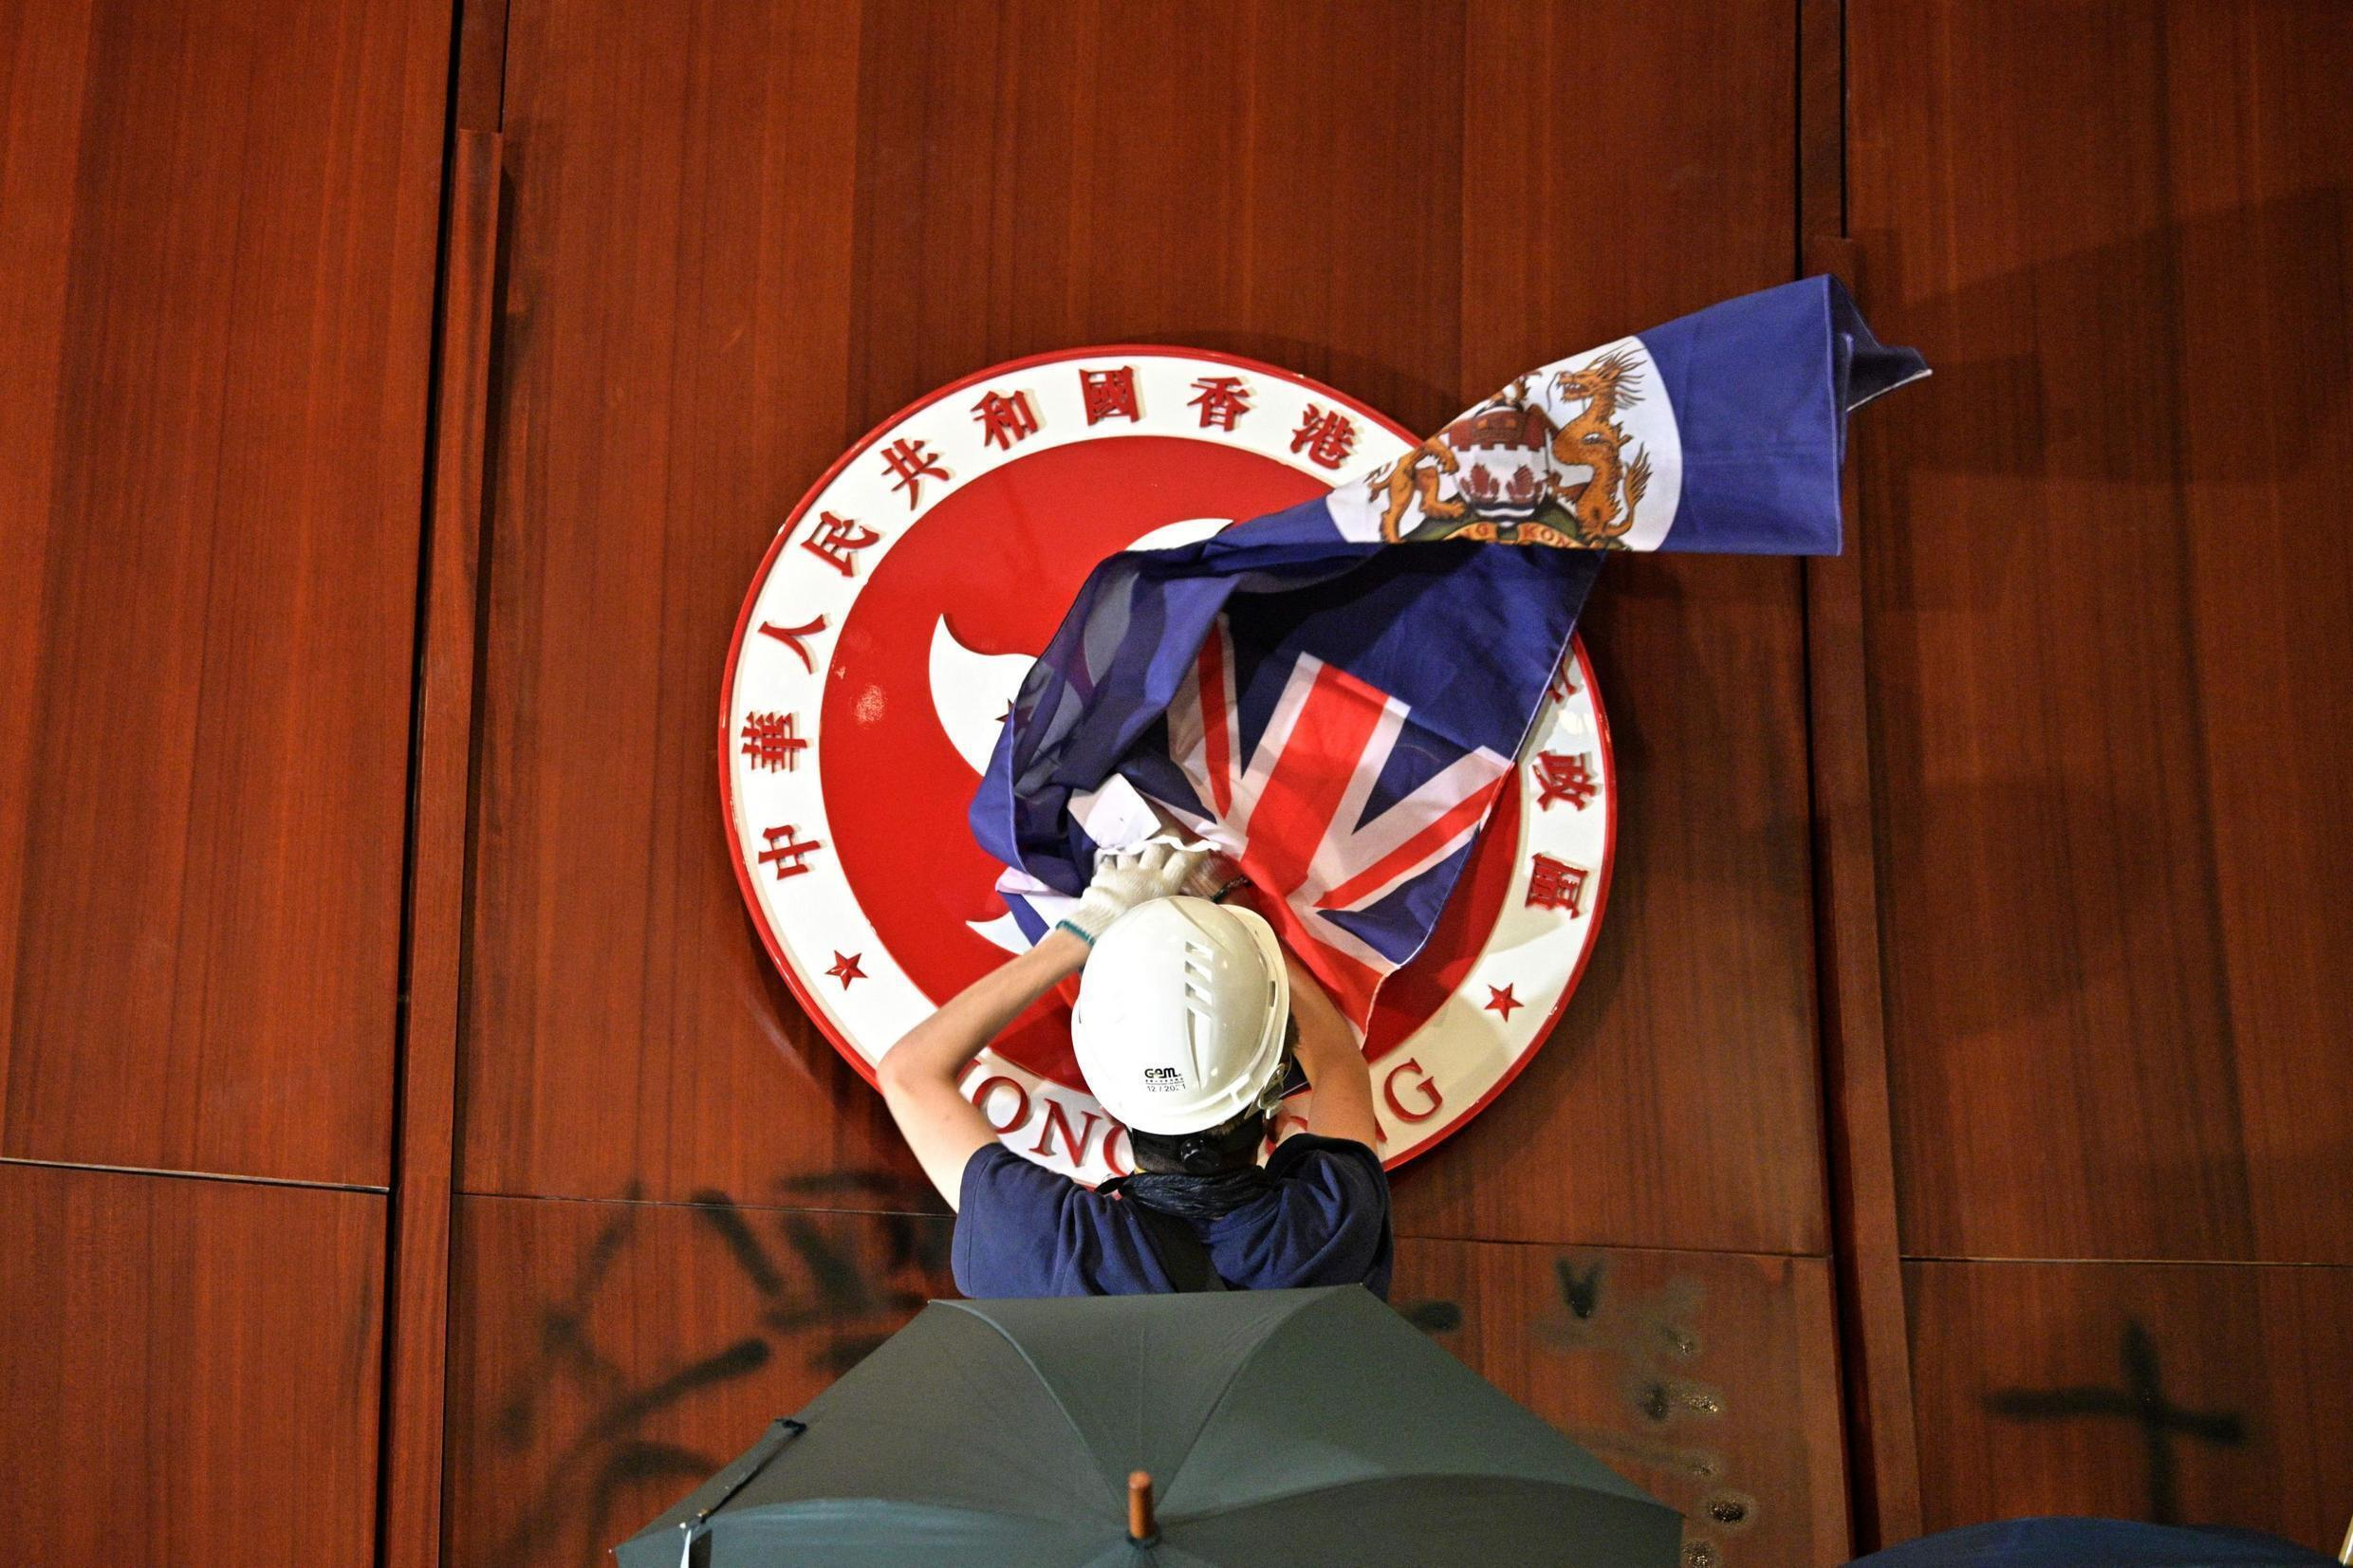 A protester tries to cover the Hong Kong flag with a British colonial flag during a break-in to the territorial parliament.